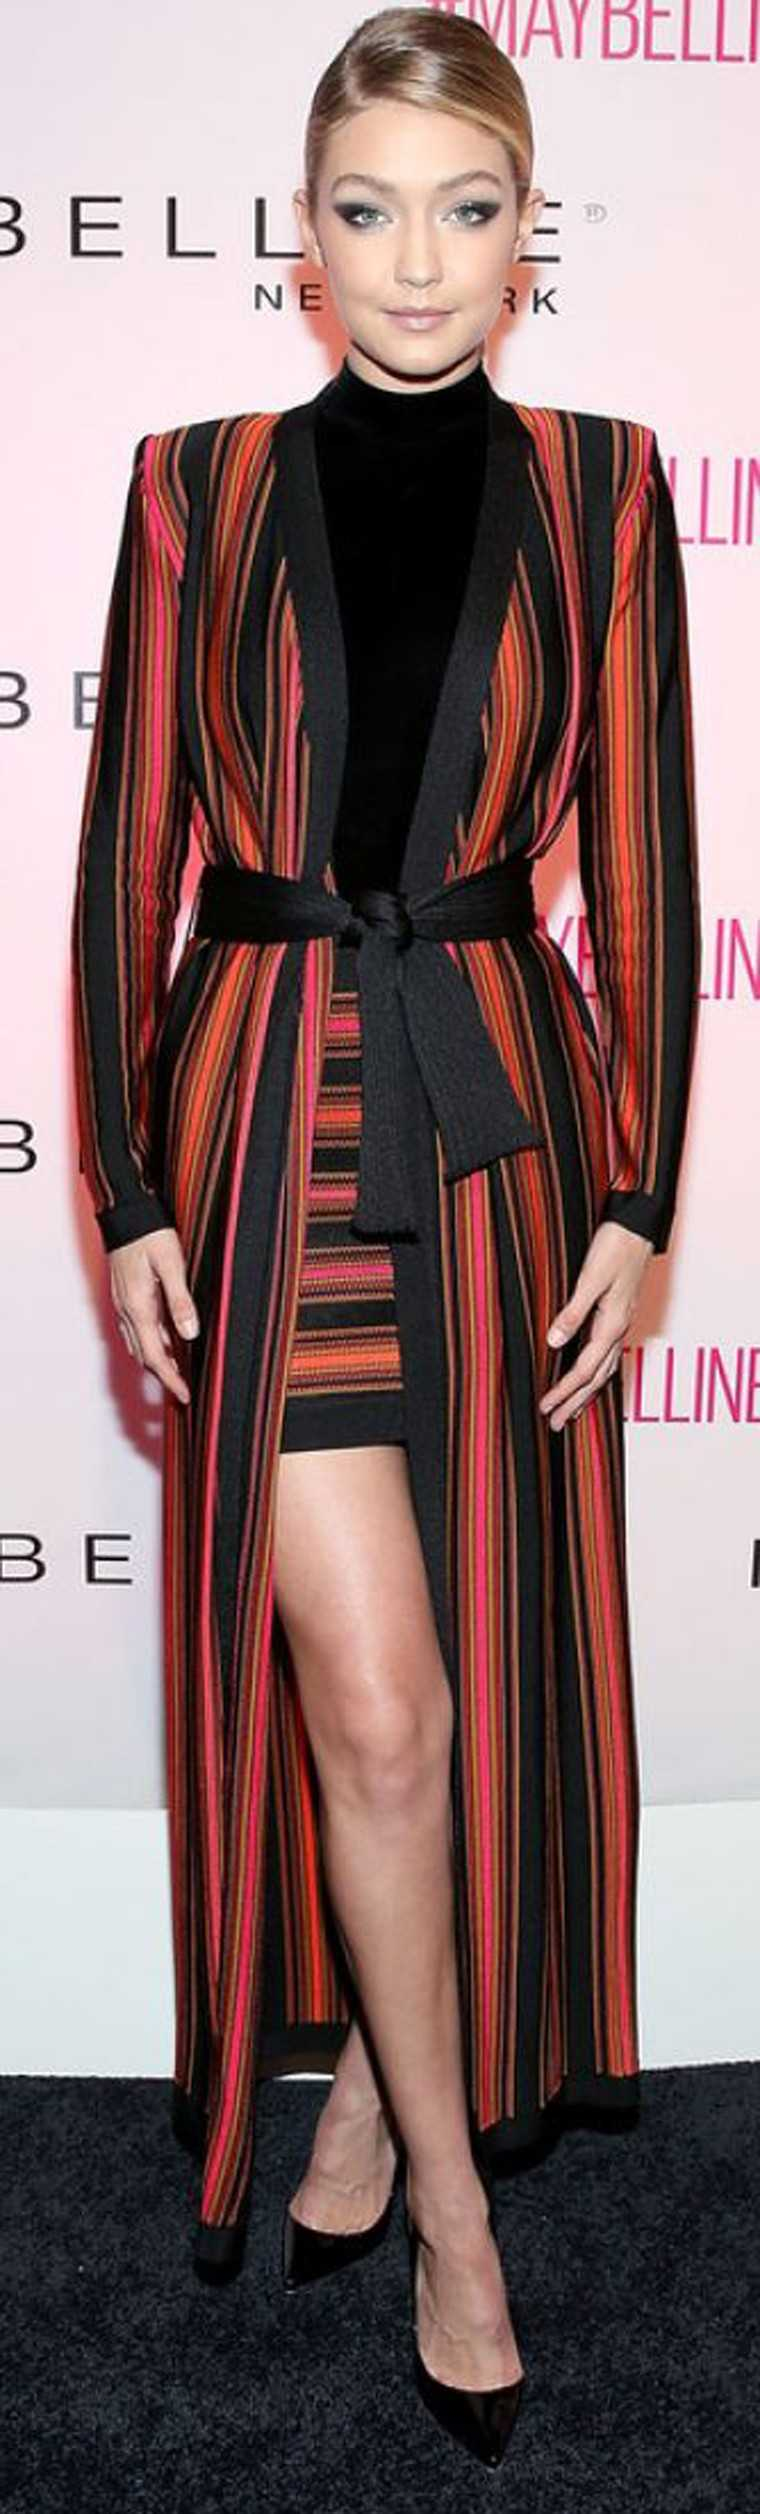 GIGI HADID: Girl of the moment Gigi Hadid worked a Balmain mini skirt and jacket combo that featured stripes in similar tones of orange, red, rust and pink offset by a black inner.